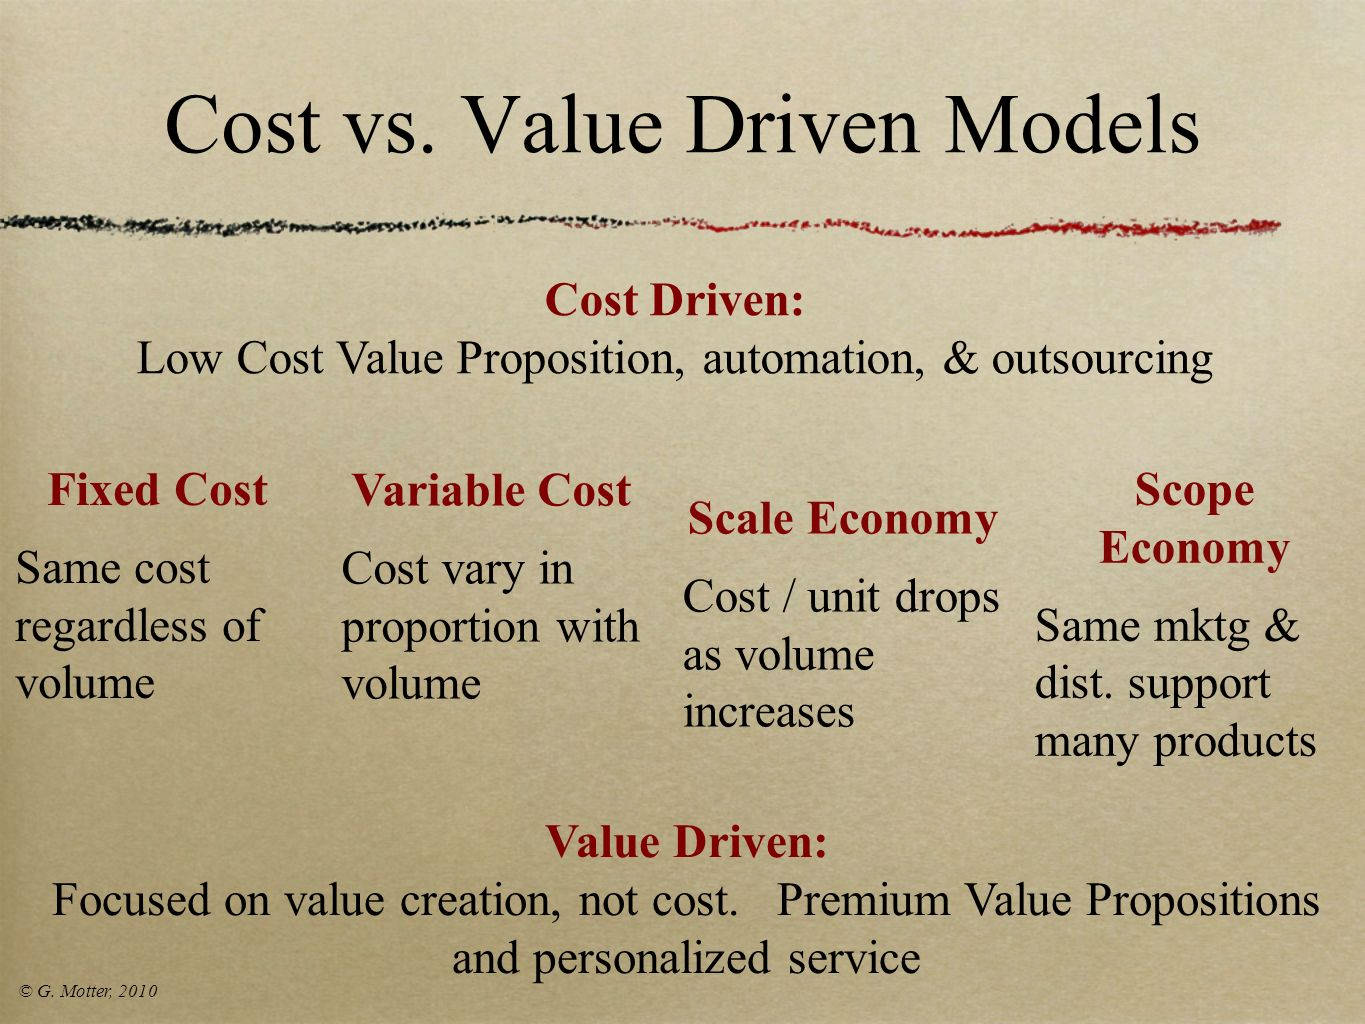 Cost vs. Value Driven Models